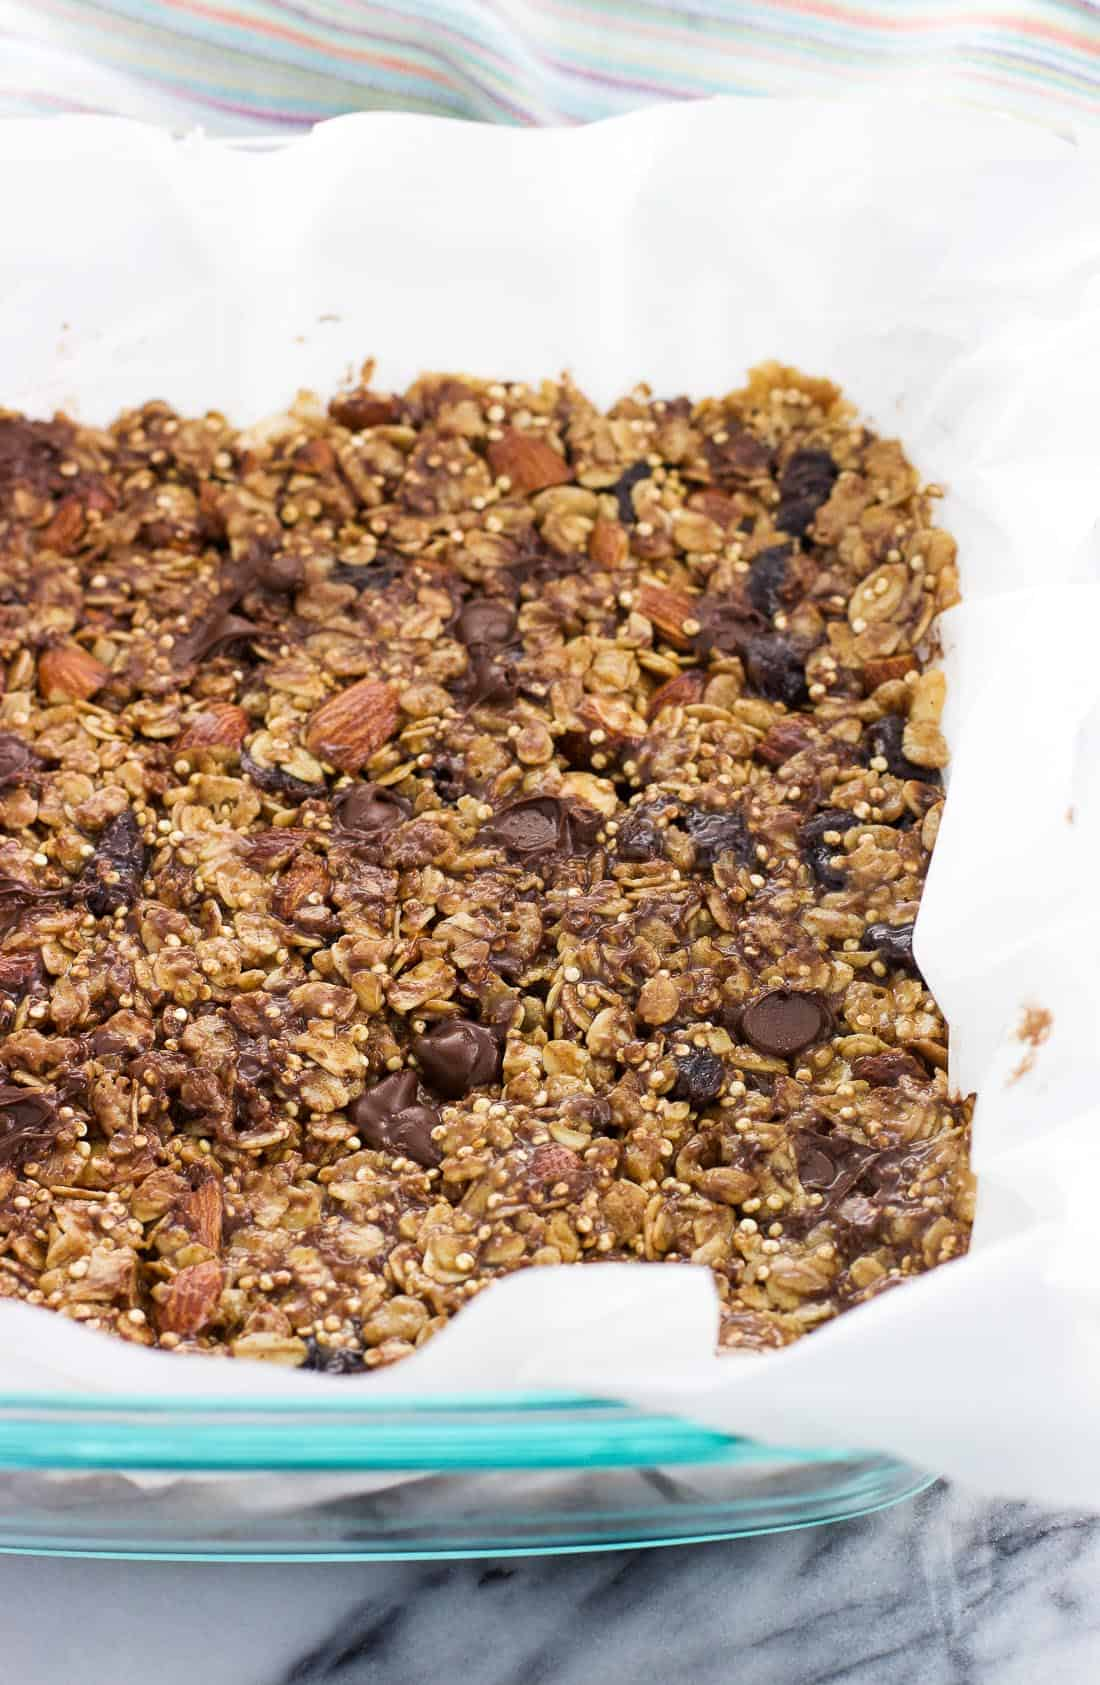 The bar mixture pressed into a parchment paper-lined dish